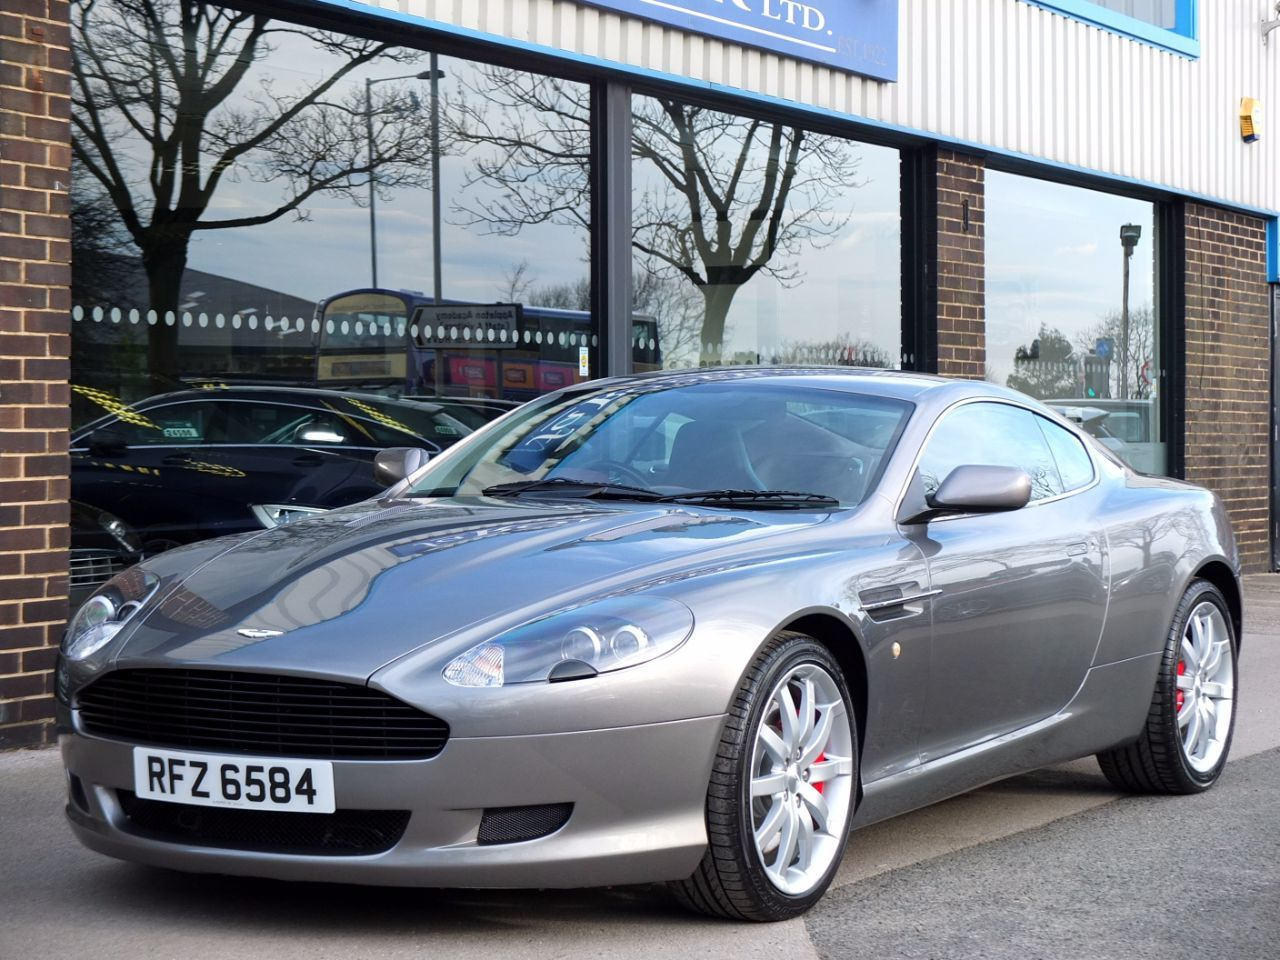 Aston Martin DB9 5.9 Coupe V12 Touchtronic Auto Coupe Petrol Tungsten Silver MetallicAston Martin DB9 5.9 Coupe V12 Touchtronic Auto Coupe Petrol Tungsten Silver Metallic at fa Roper Ltd Bradford